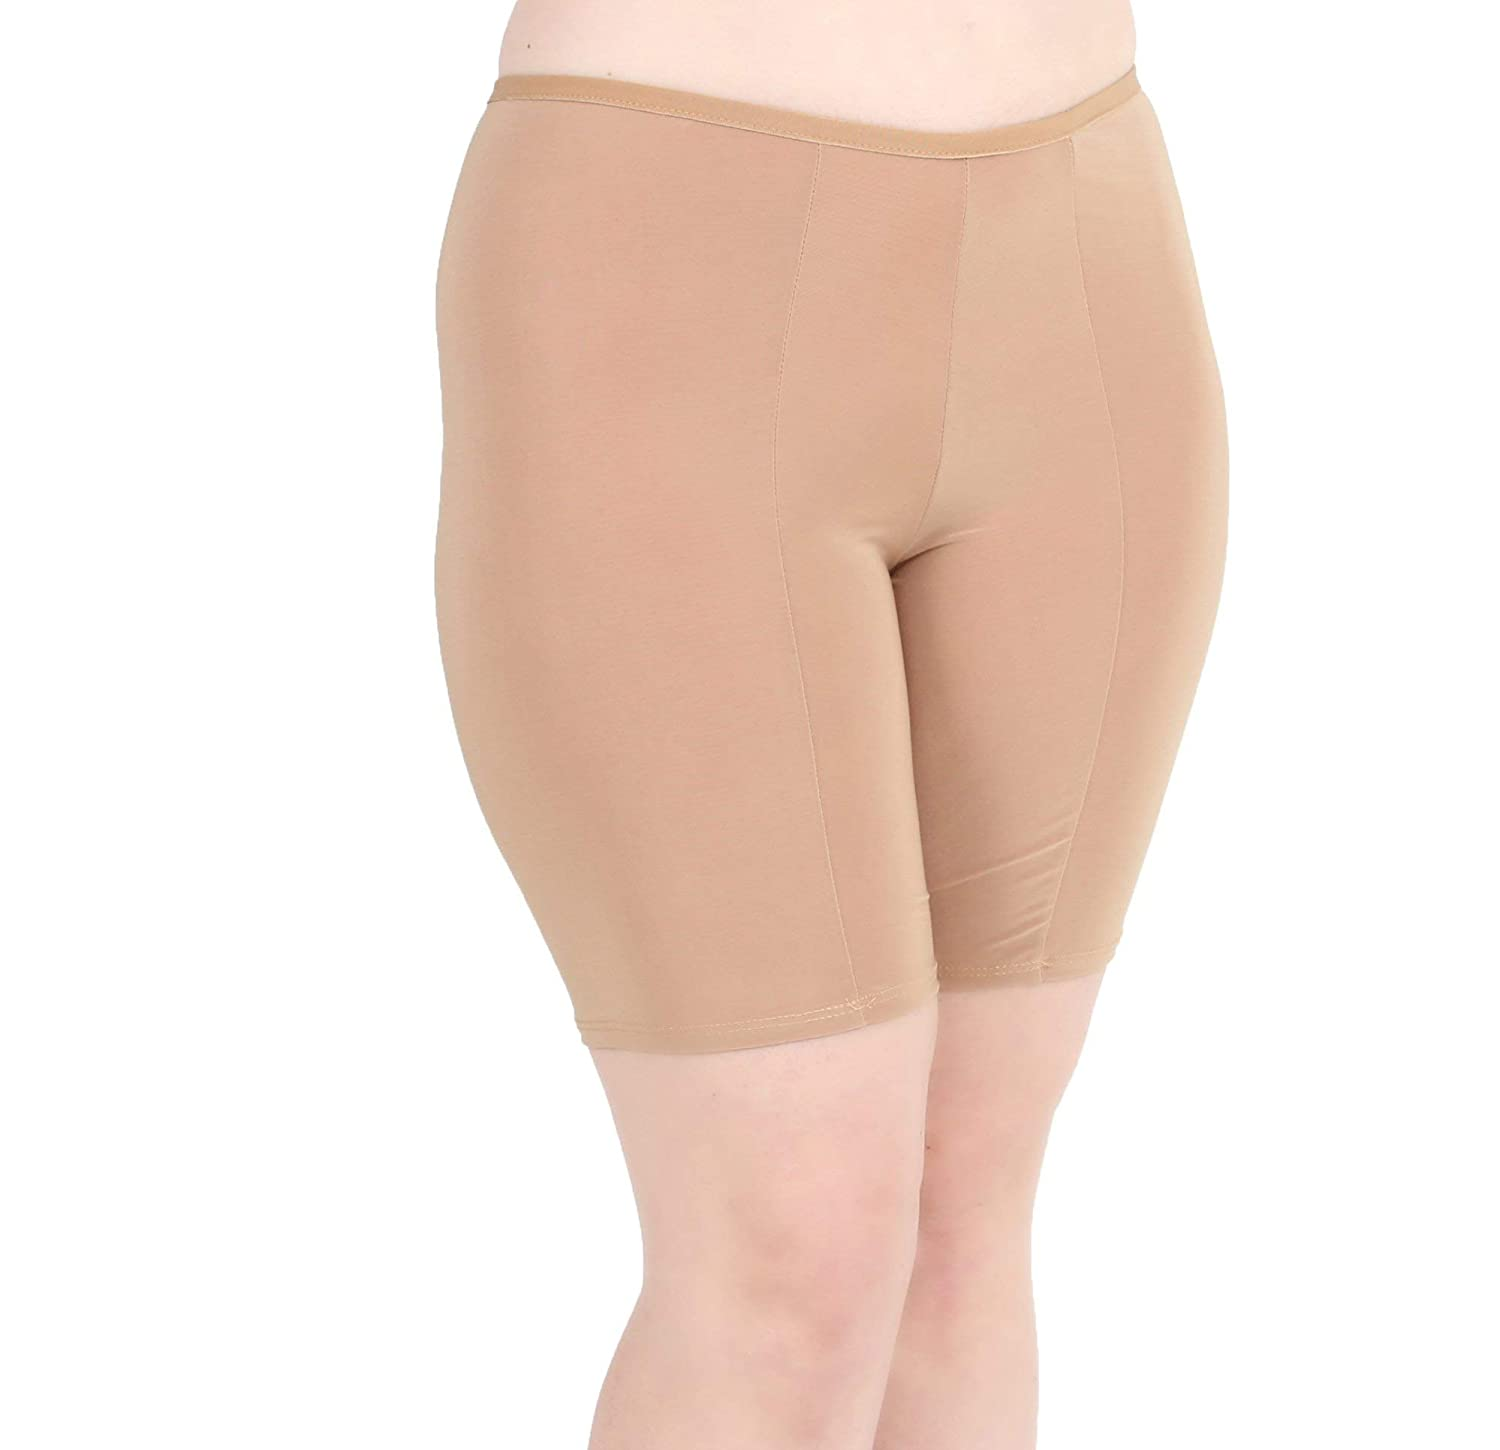 d5e80dd6d67 Undersummers Women s Ultrasoft Classic Slip Shorts  Prevent Thigh Chafing  with Stay-Put Mid-Thigh Length (S-4X) at Amazon Women s Clothing store